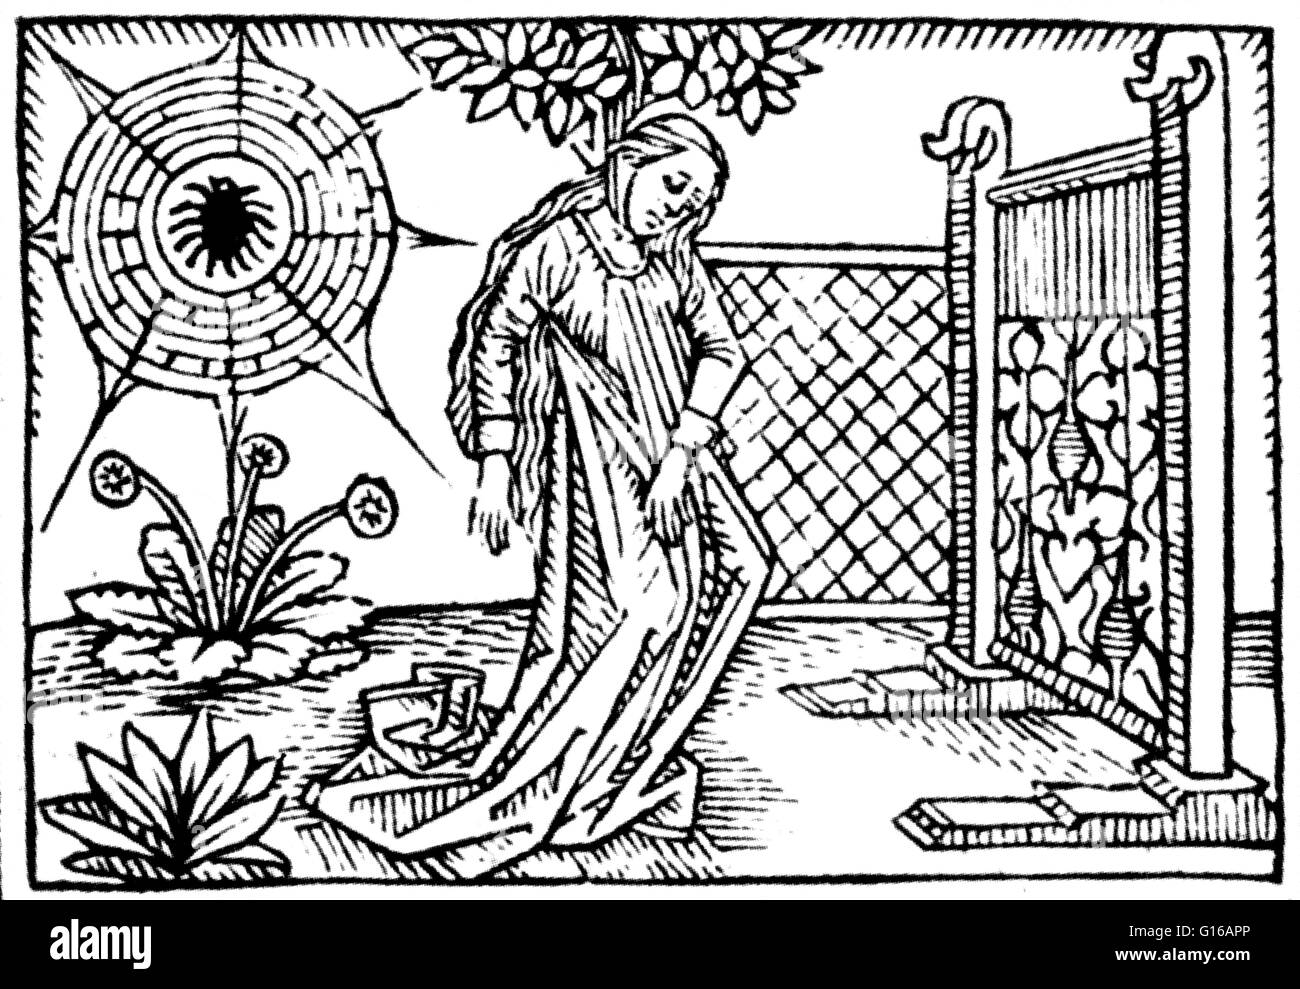 Arachne was a weaver who boasted that her skill was greater than that of Athena, the Greek goddess of wisdom, weaving, - Stock Image